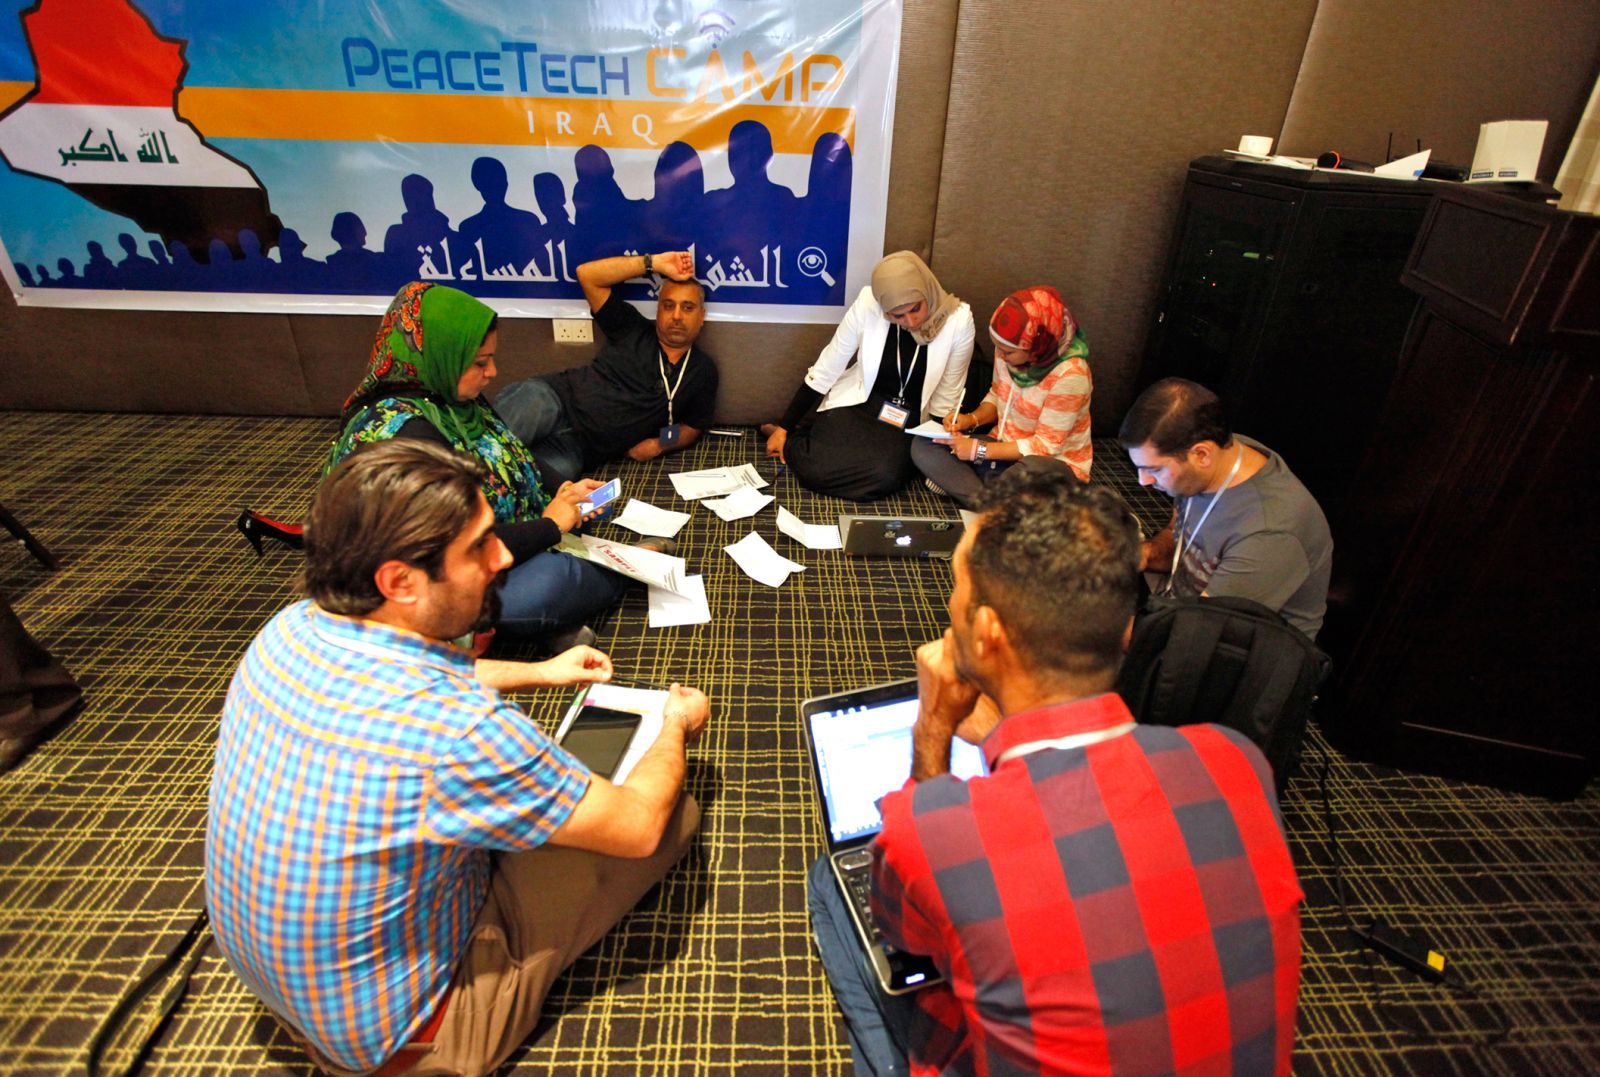 USIP Running 'PeaceTech Camps' in Iraq